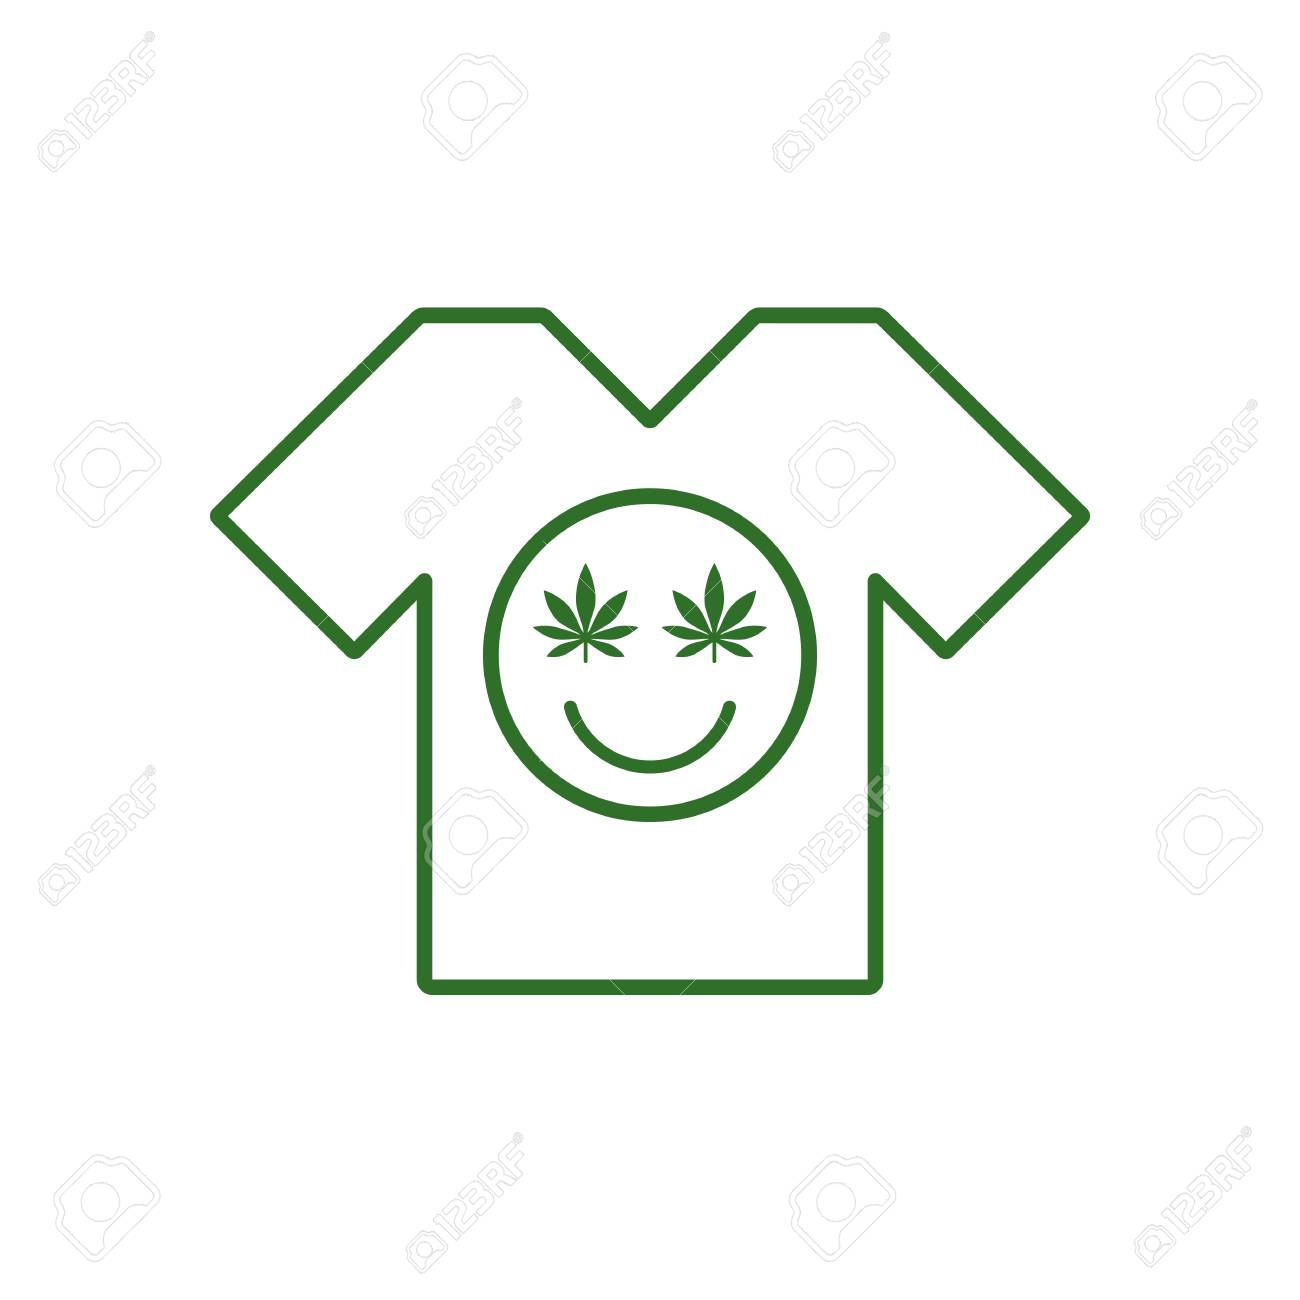 Marijuana Smiley Face Cannabis Smile White Tee Shirt Smiling Royalty Free Cliparts Vectors And Stock Illustration Image 97109402